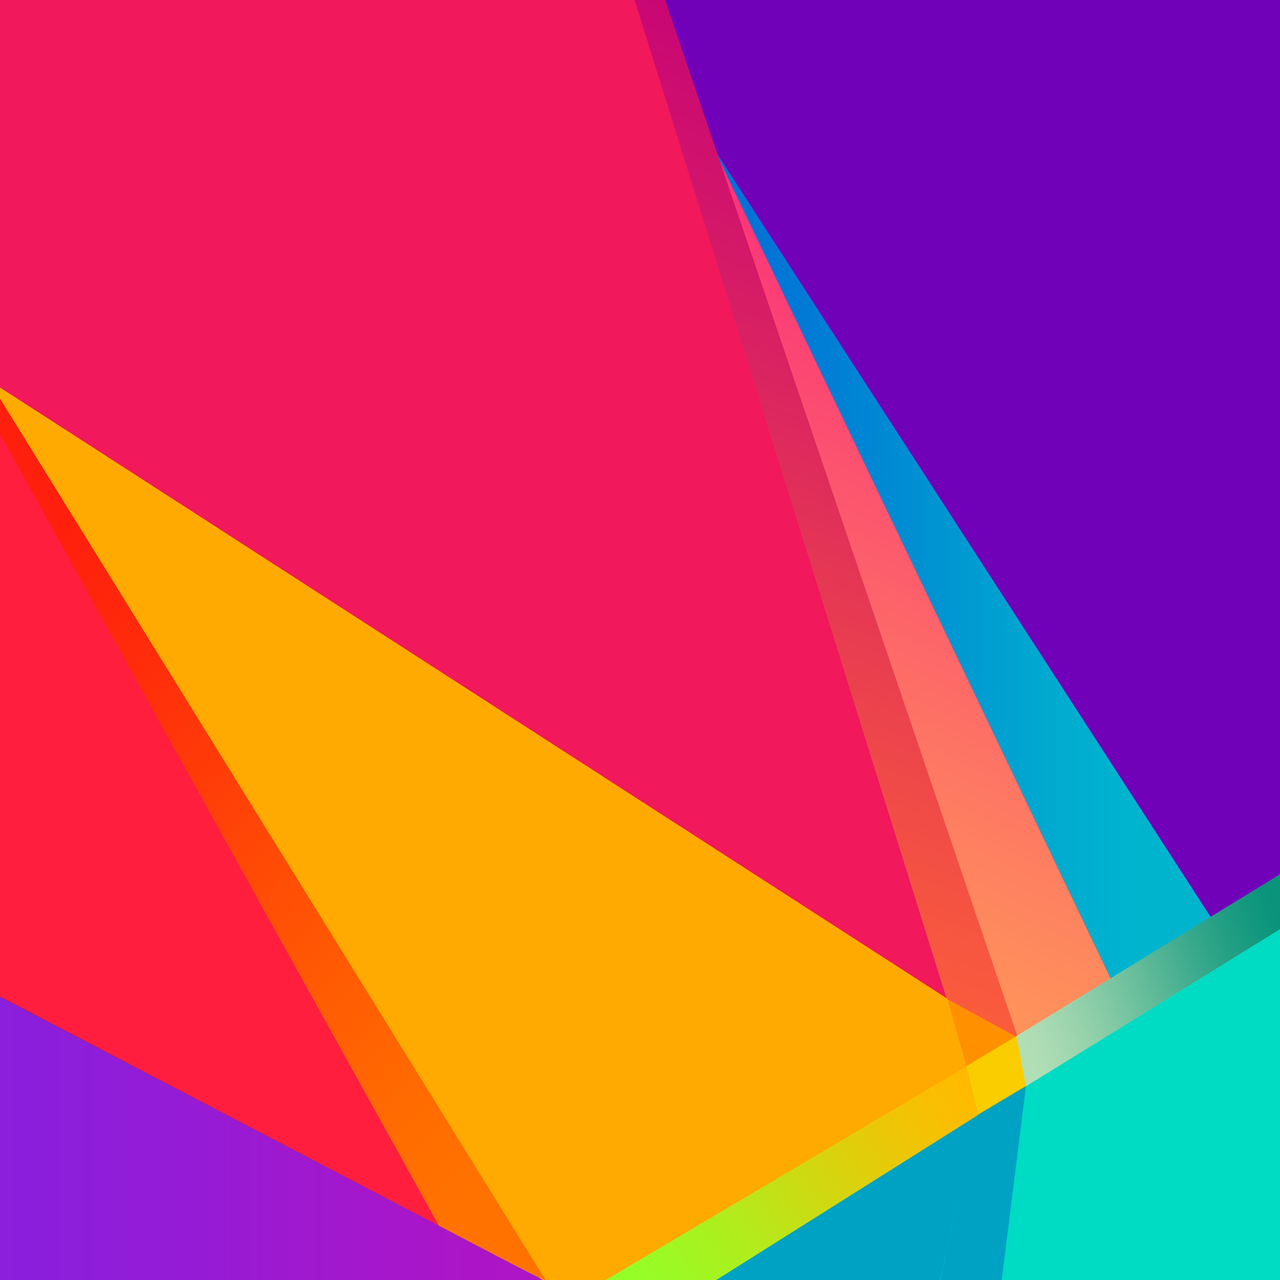 Samsung galaxy alpha official wallpapers now available for samsung galaxy alpha official wallpapers now available for download voltagebd Choice Image